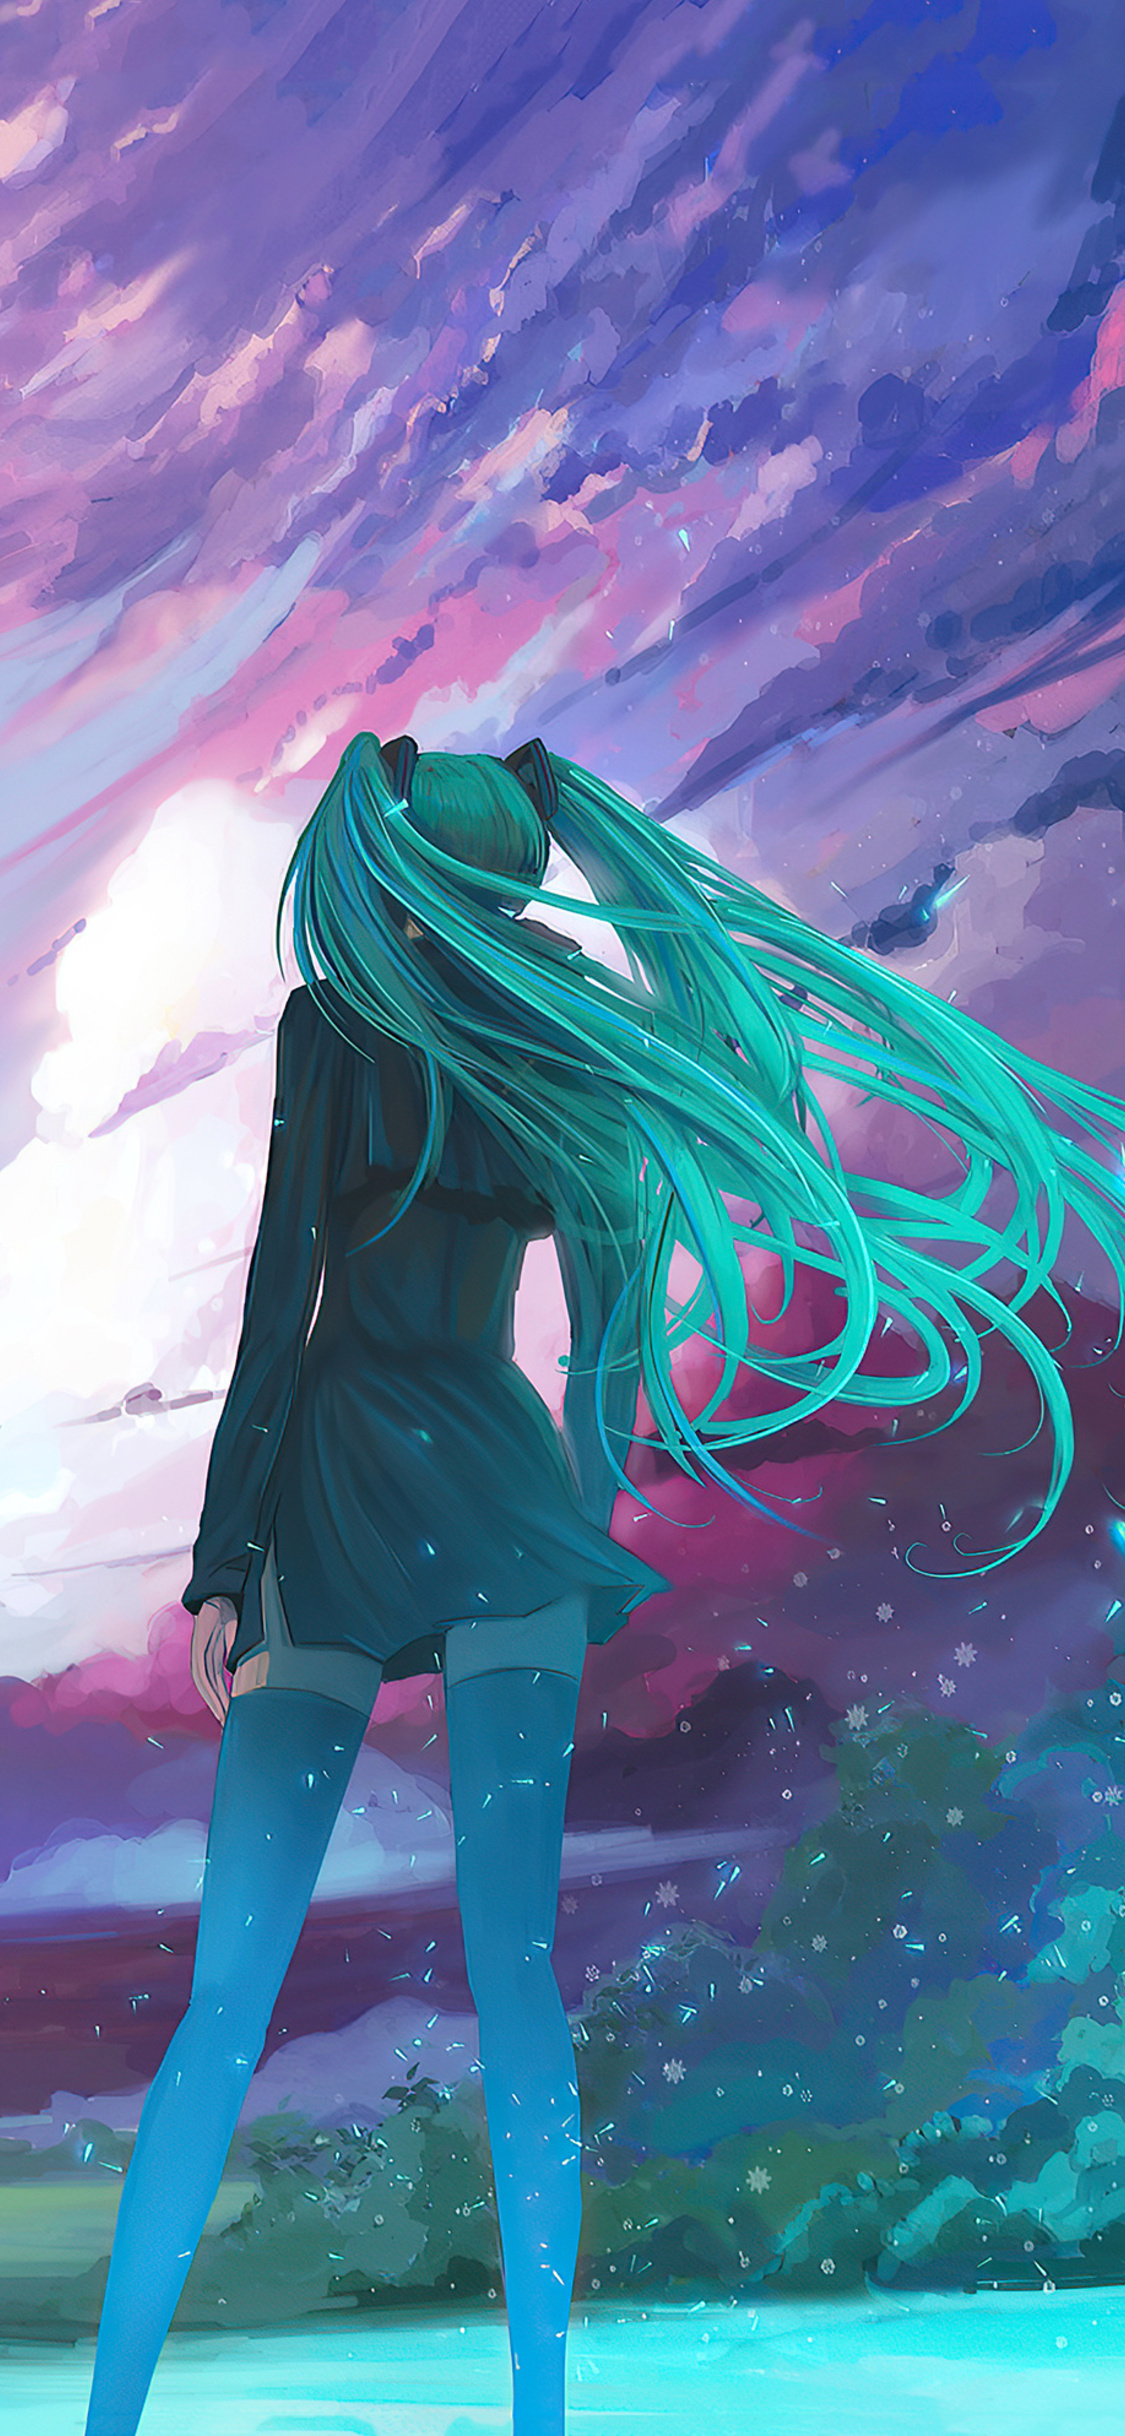 1125x2436 Anime Girl New Vibes 4k Iphone XS,Iphone 10